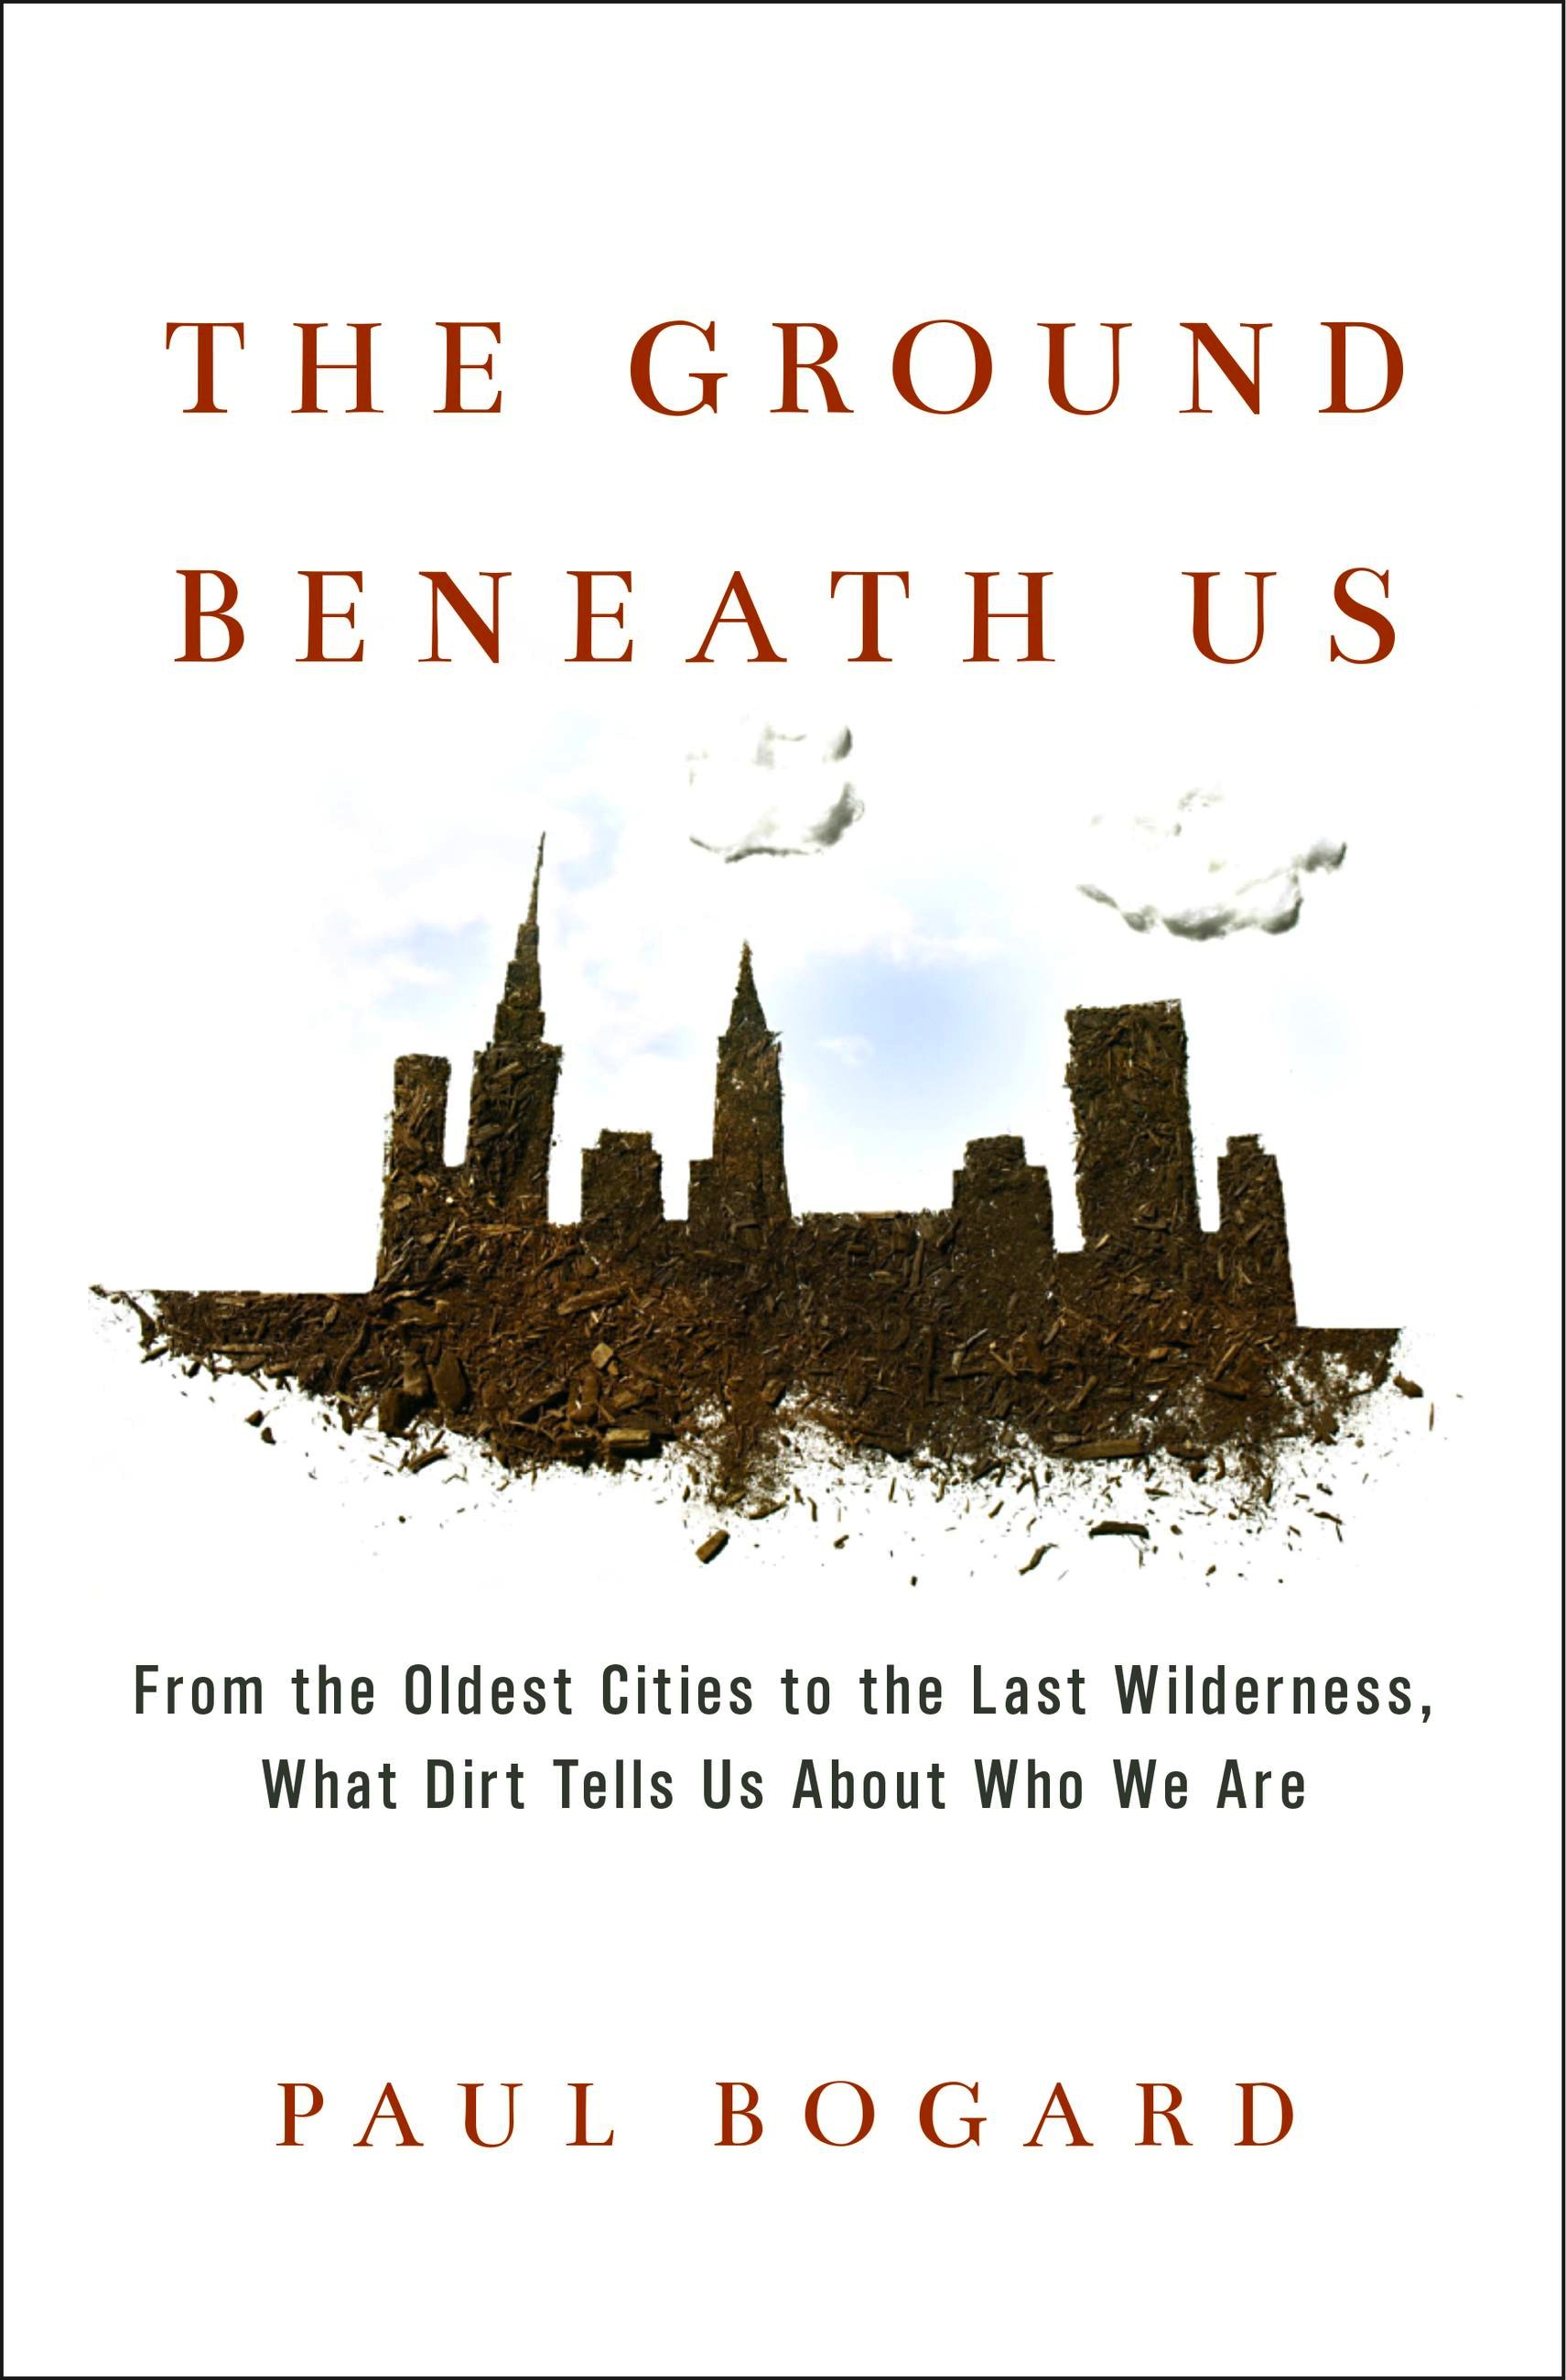 The Ground Beneath Us: From the Oldest Cities to the Last Wilderness, What Dirt Tells Us About Who We Are grover norquist glenn debacle obama s war on jobs and growth and what we can do now to regain our future